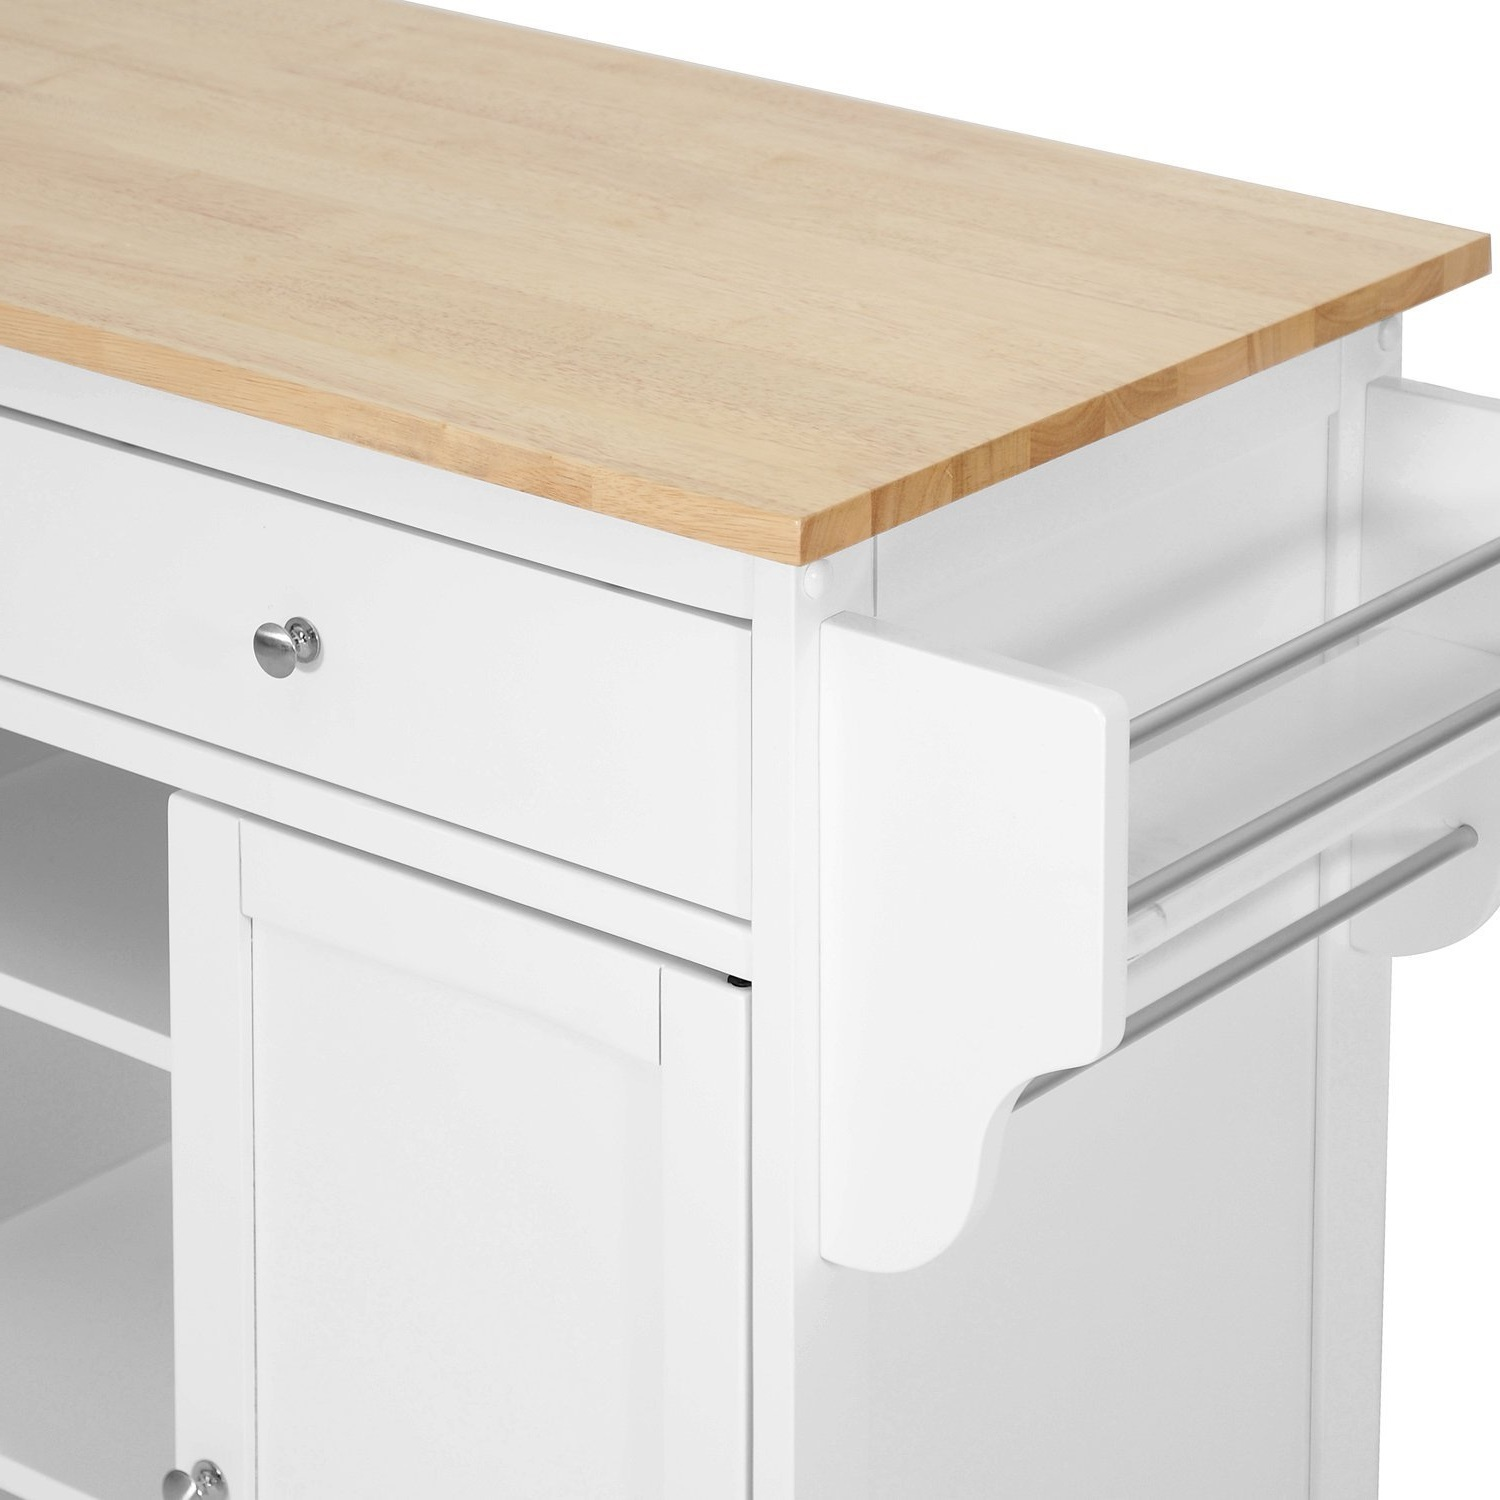 Kitchen Cabinets On Wheels: Modern Kitchen Island Cart, Rack, Shelve, Wheel,Countertop